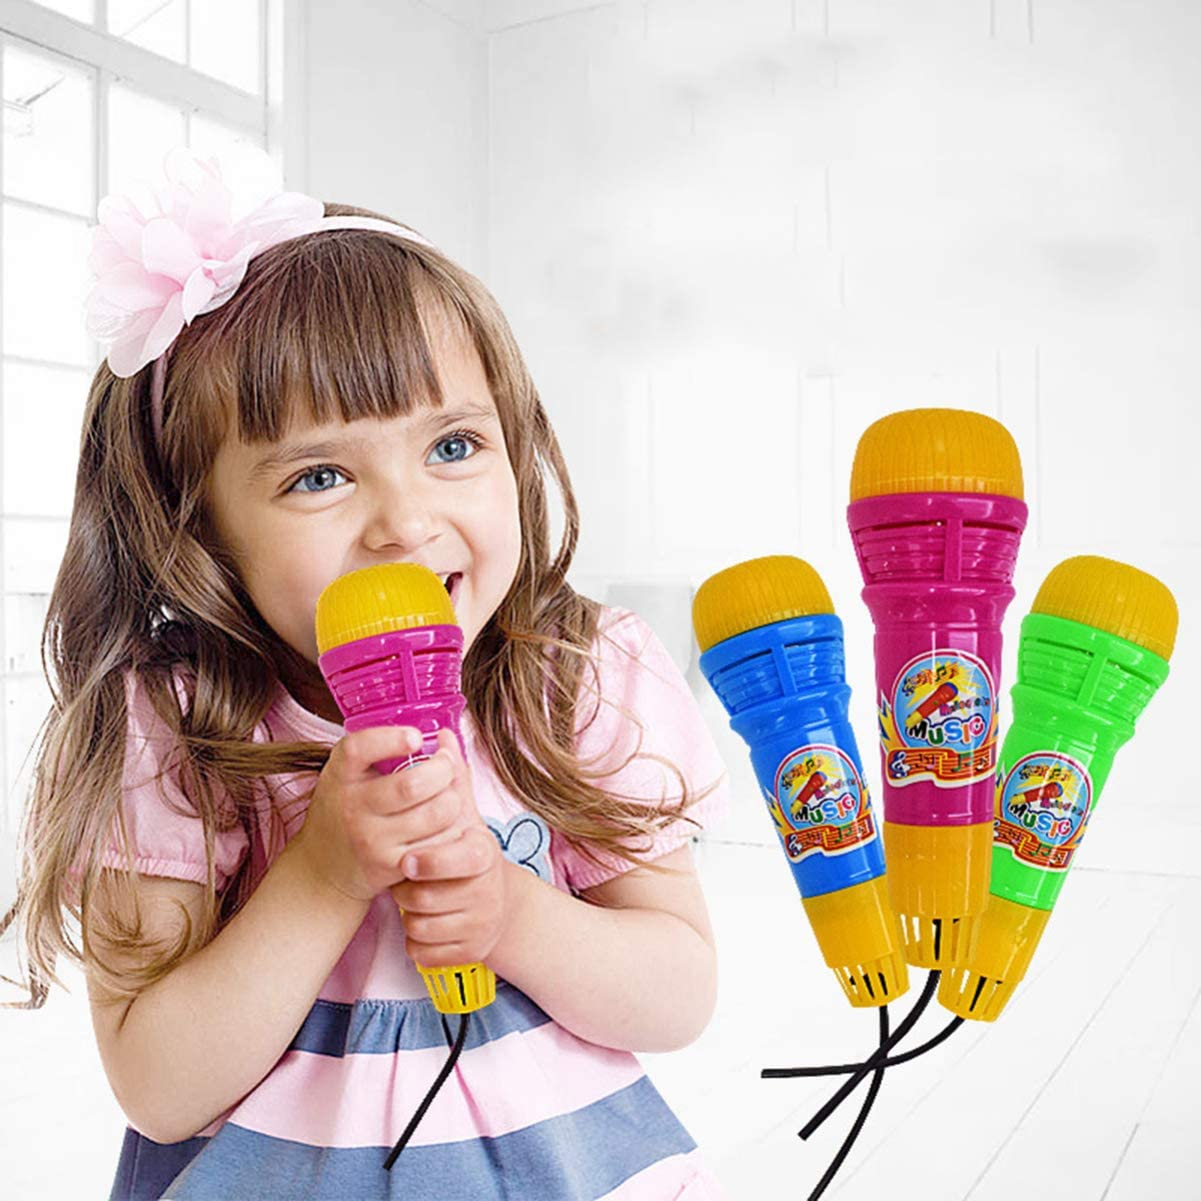 Mixed Color TOYANDONA 5pcs Echo Microphone Fashion Echo Microphone Toy Plastic Echo Microphone for Kids Party Gifts Educational Playthings